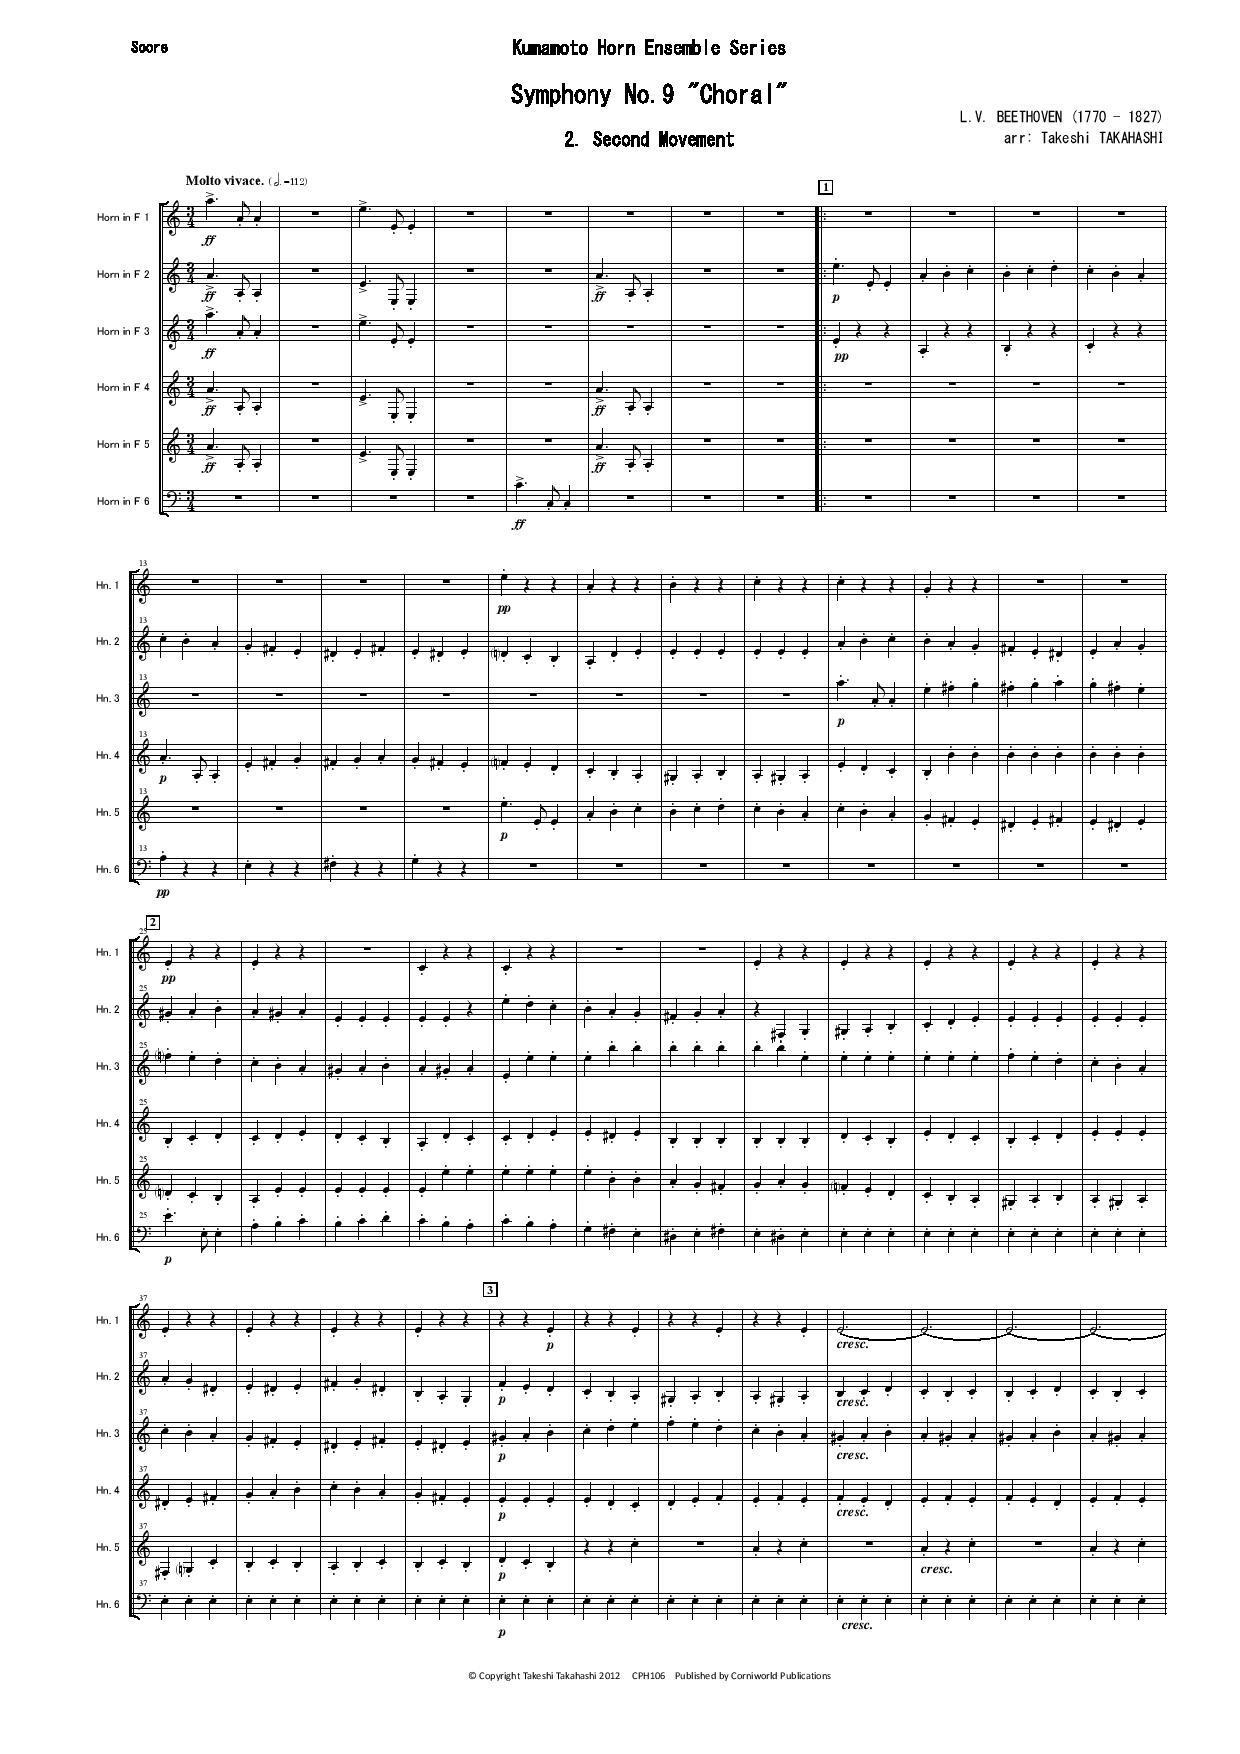 2nd Mvt from Symphony No 9 (Beethoven)